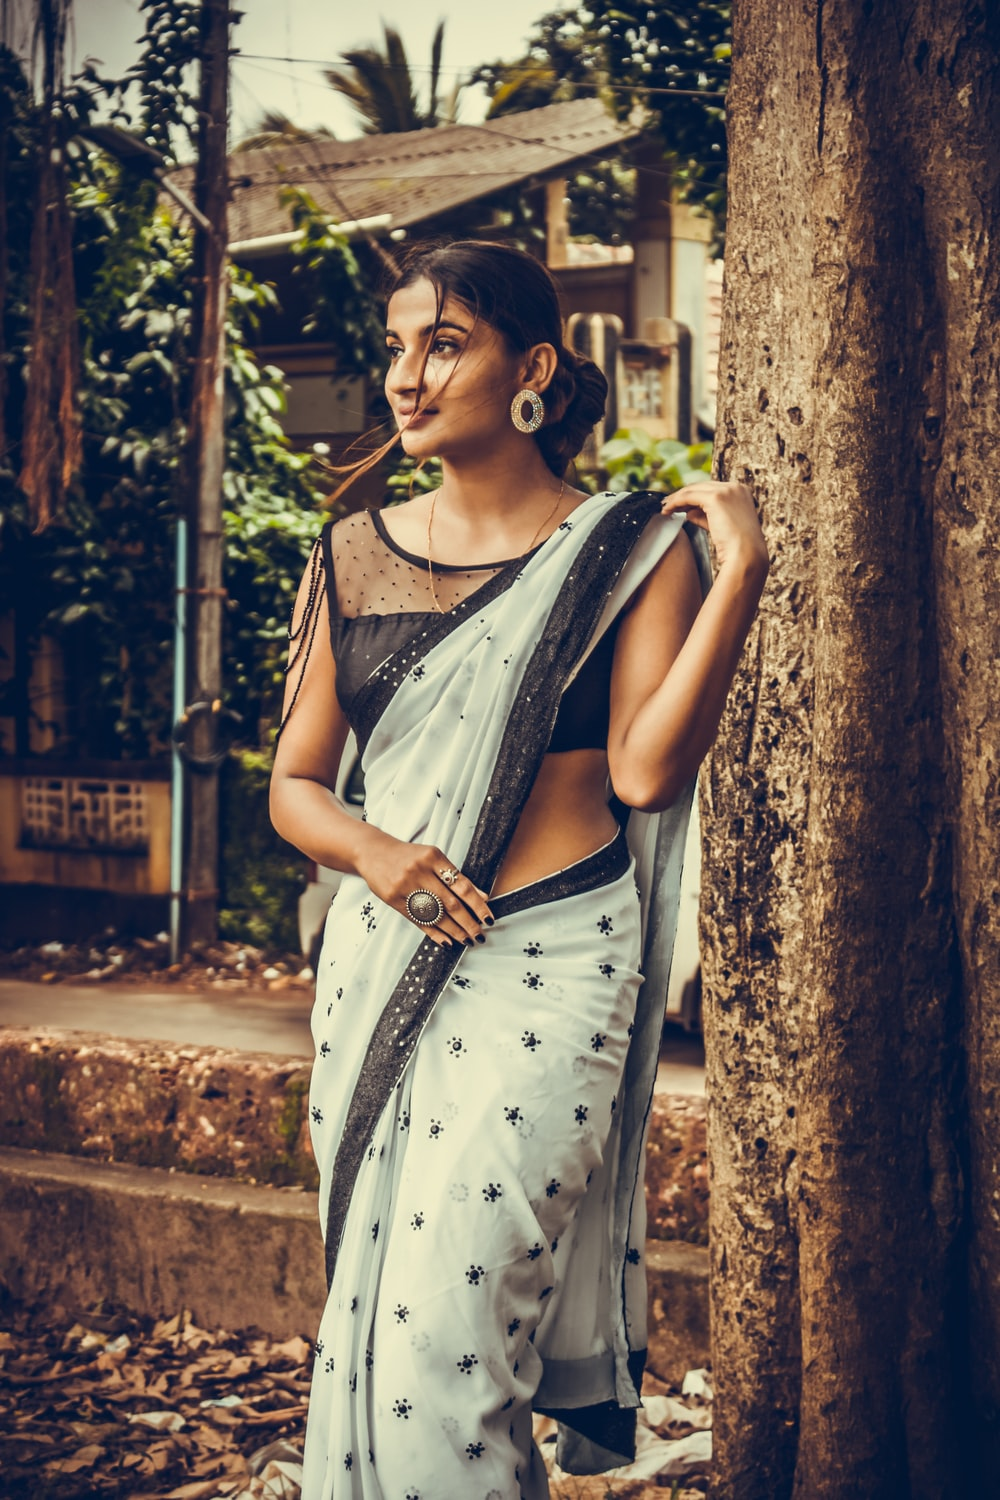 woman wearing black and white saree dress standing on tree